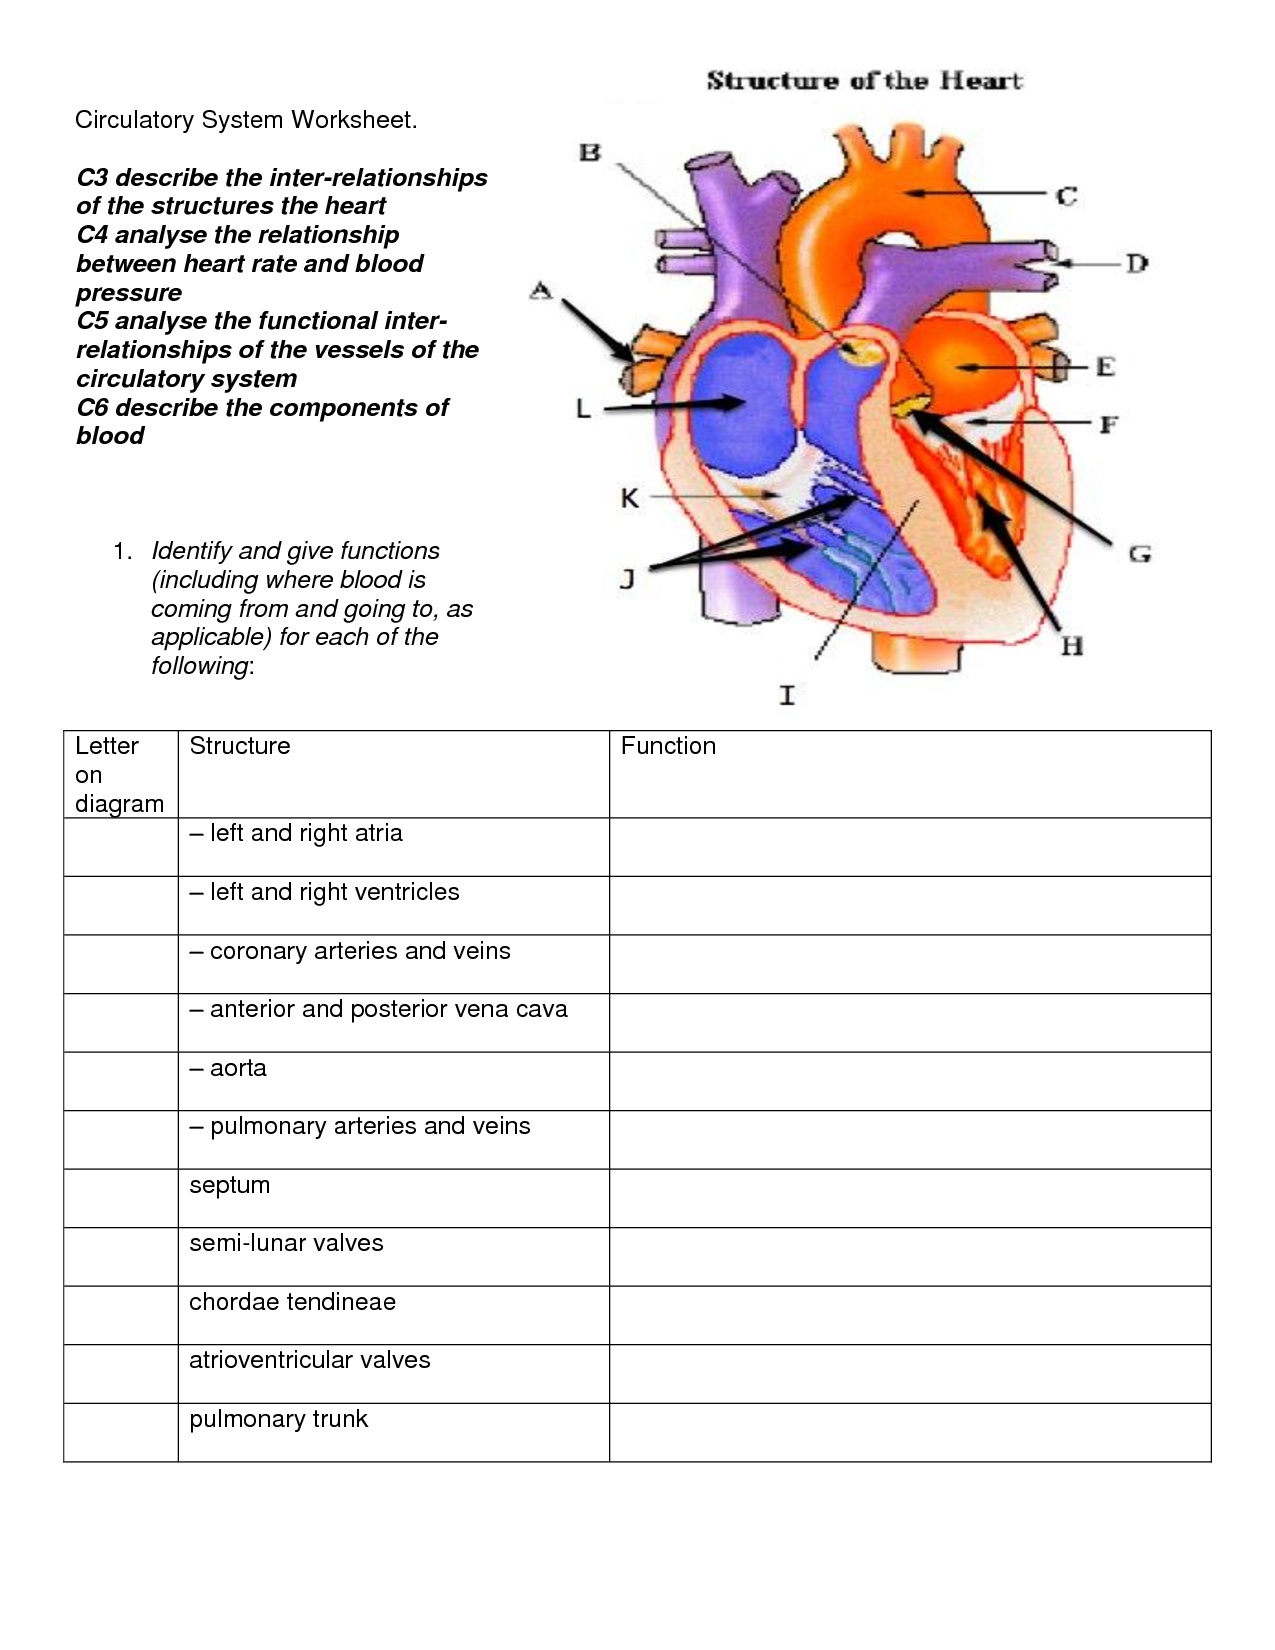 free parts of the heart worksheets | Describe the function of the ...